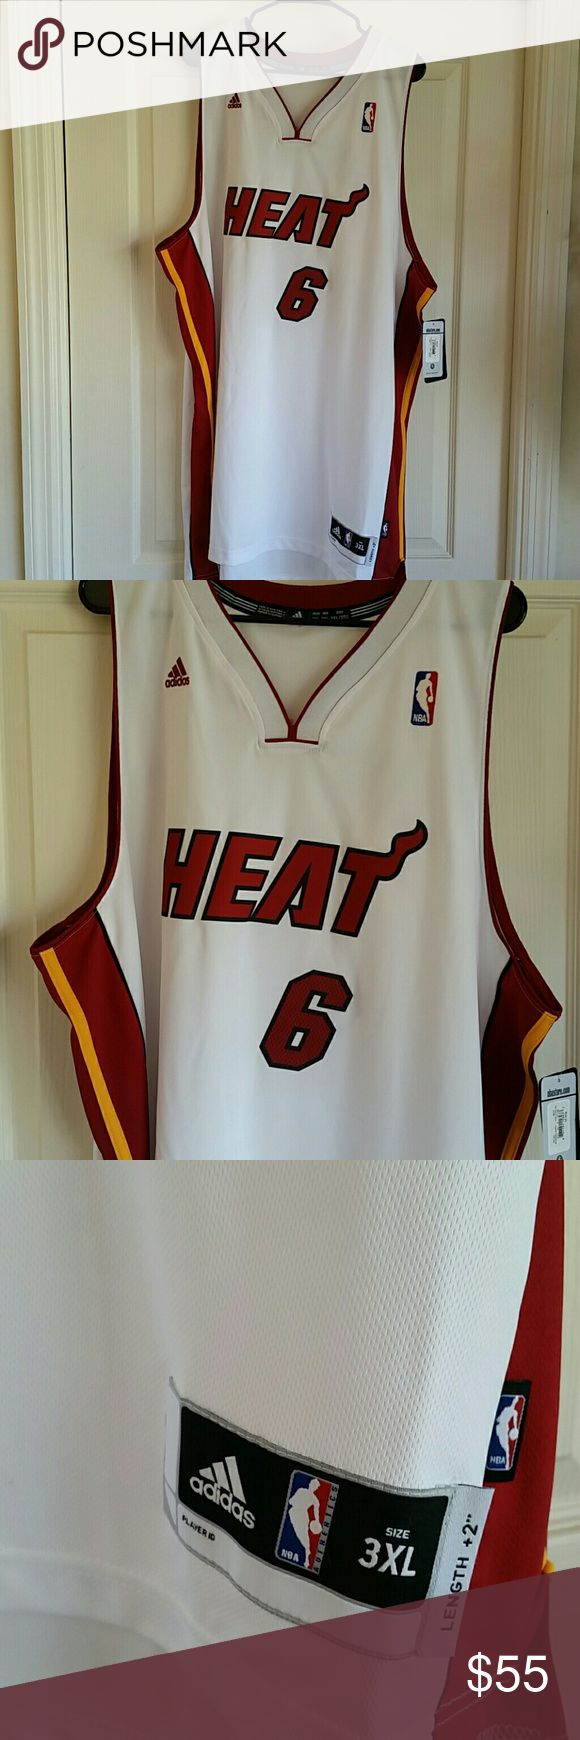 LEBRON JAMES MIAMI HEAT SWINGMAN JERSEY RARE SIZE 3XL BRAND NEW WITH TAGS NICKNAME JERSEY THESE WERE WORN FOR 1 GAME, HARD TO FIND adidas Shirts